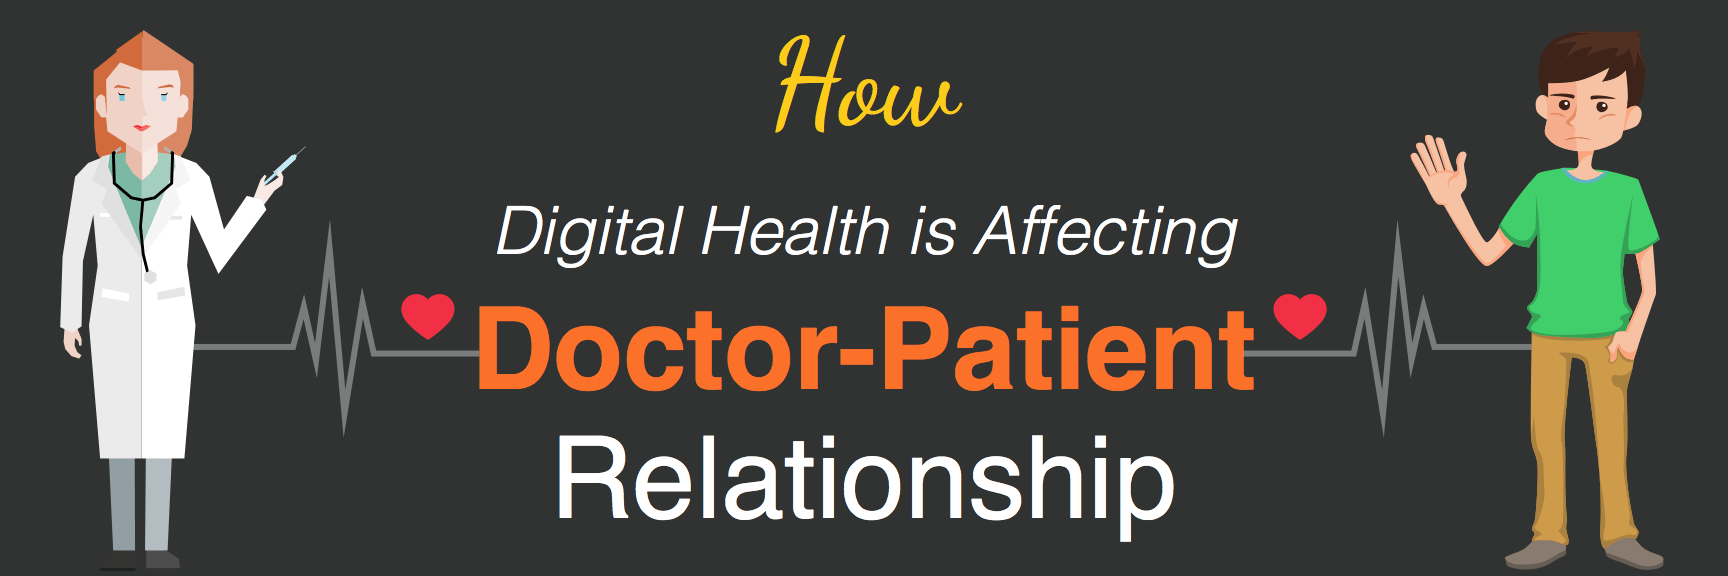 doctor-patient relationship changing it's going electronic